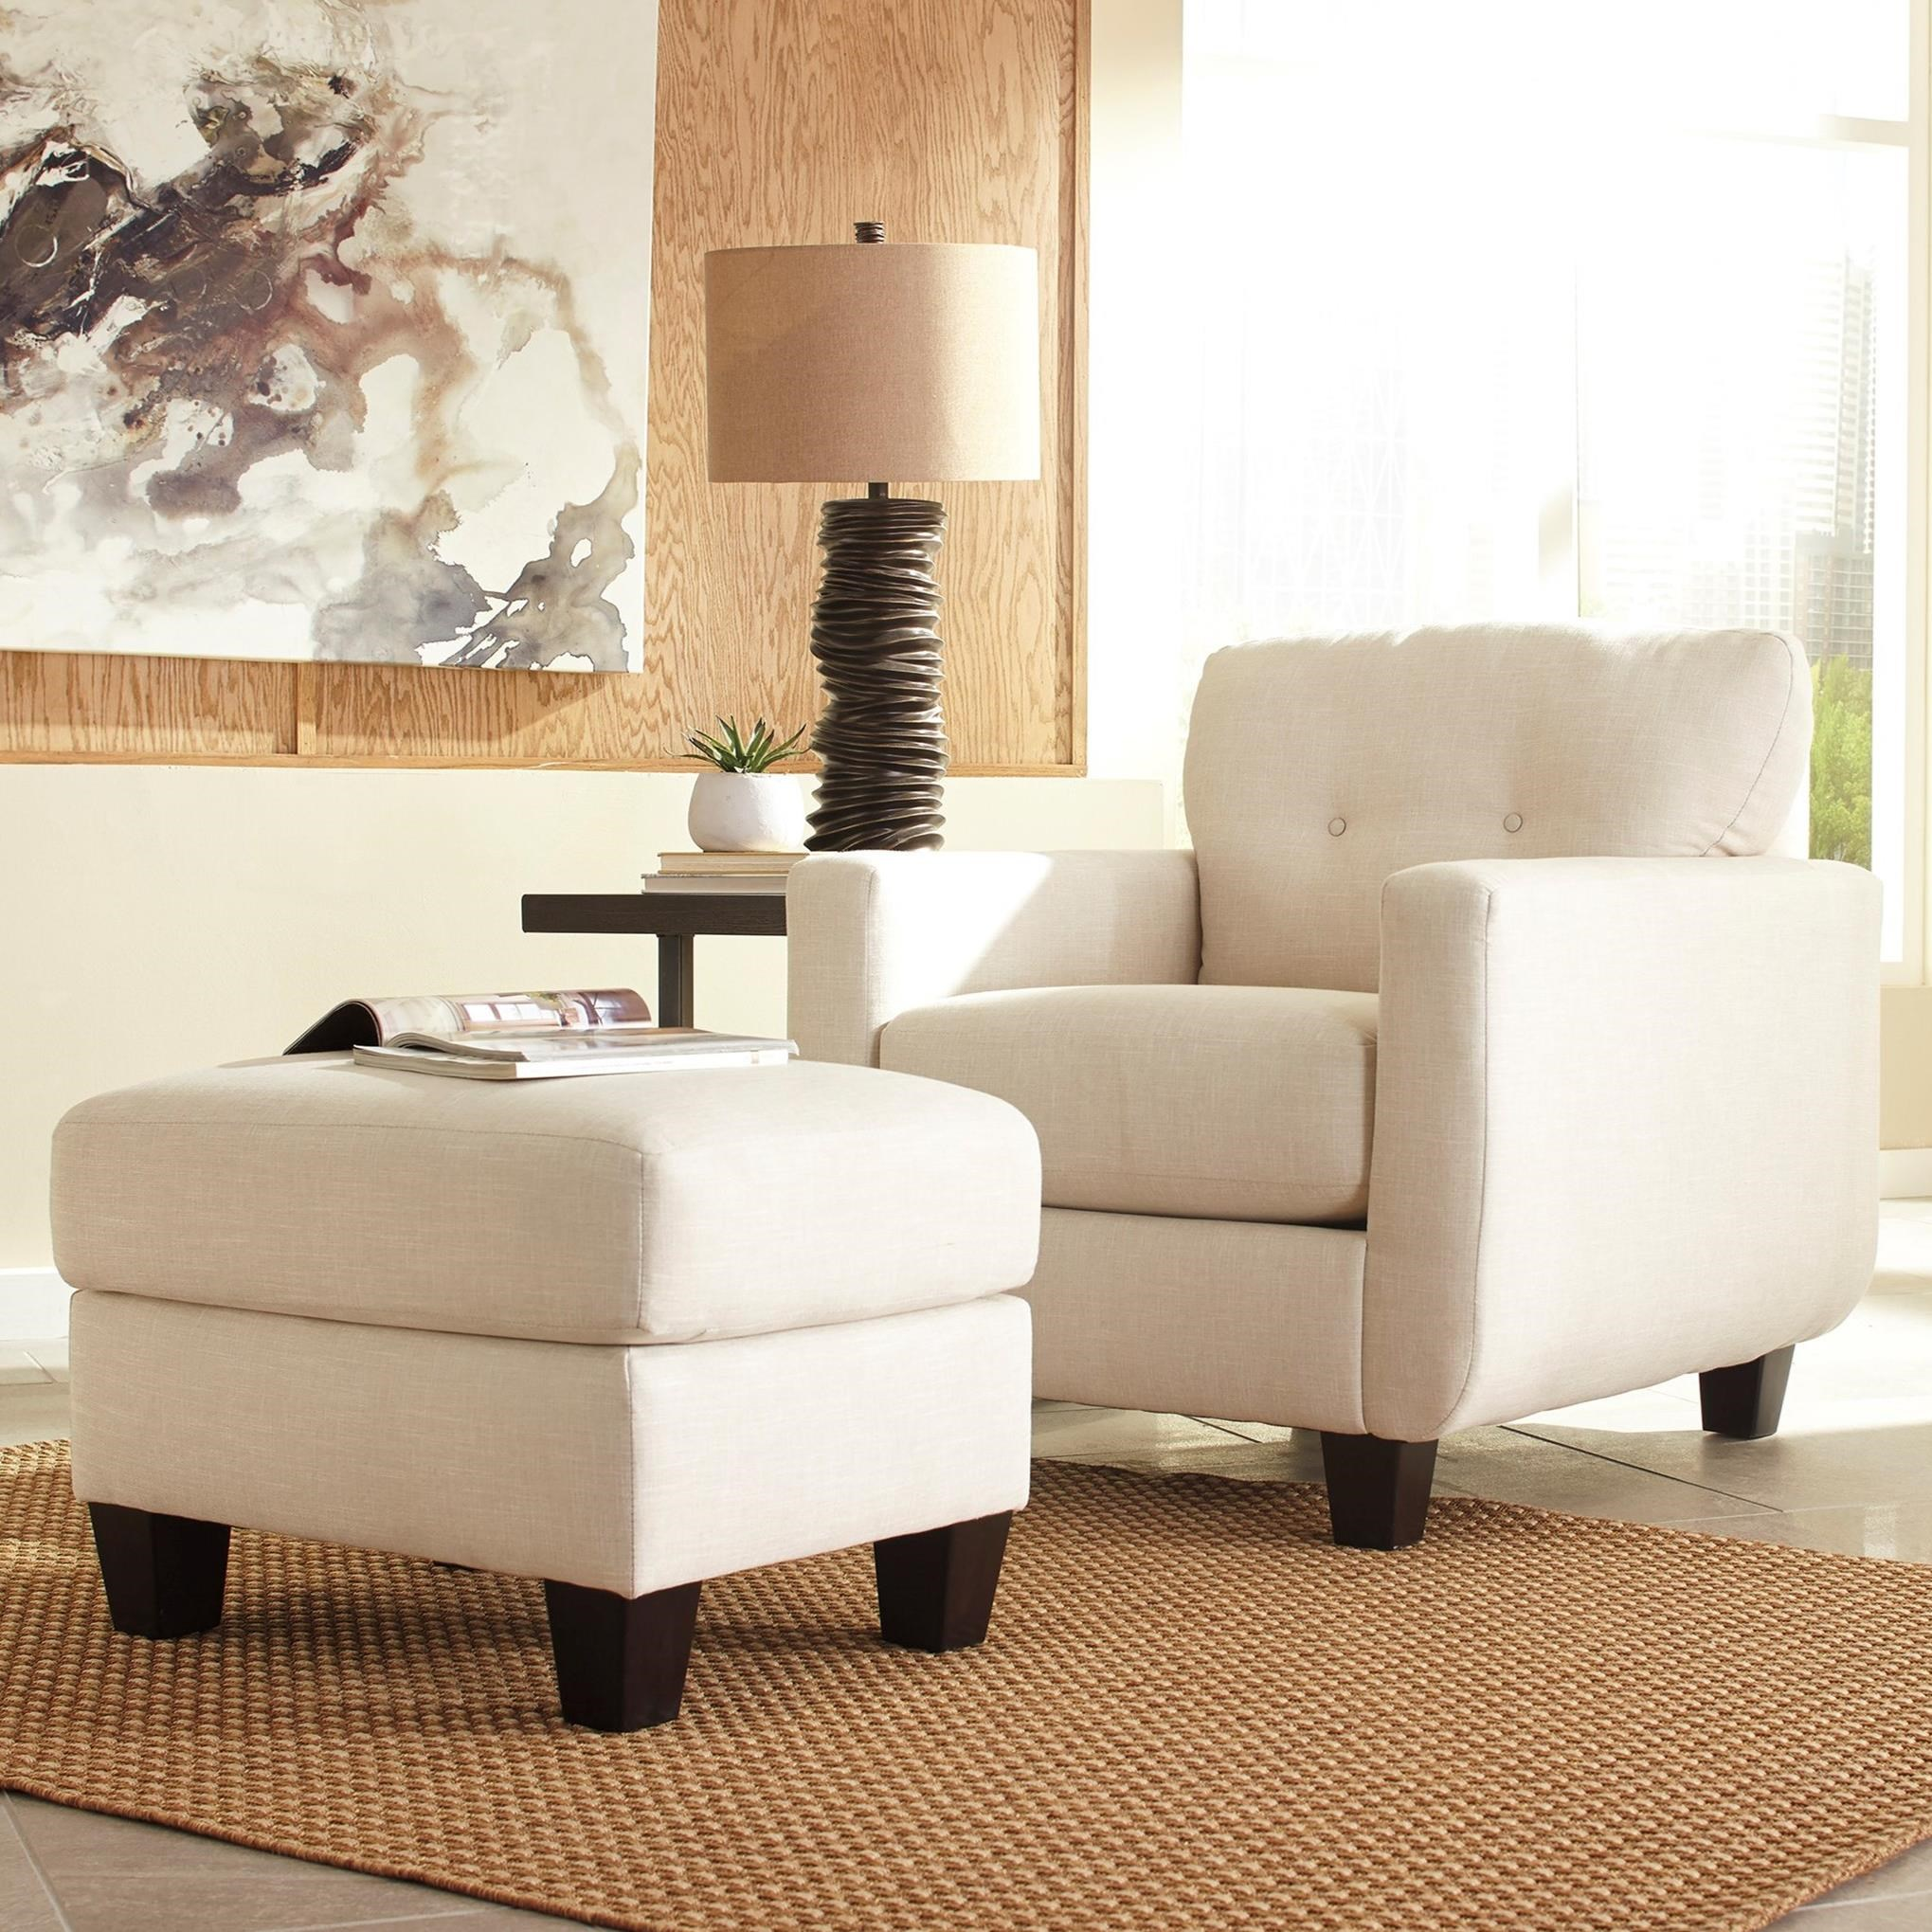 Benchcraft Drasco Chair & Ottoman - Item Number: 5980220+14